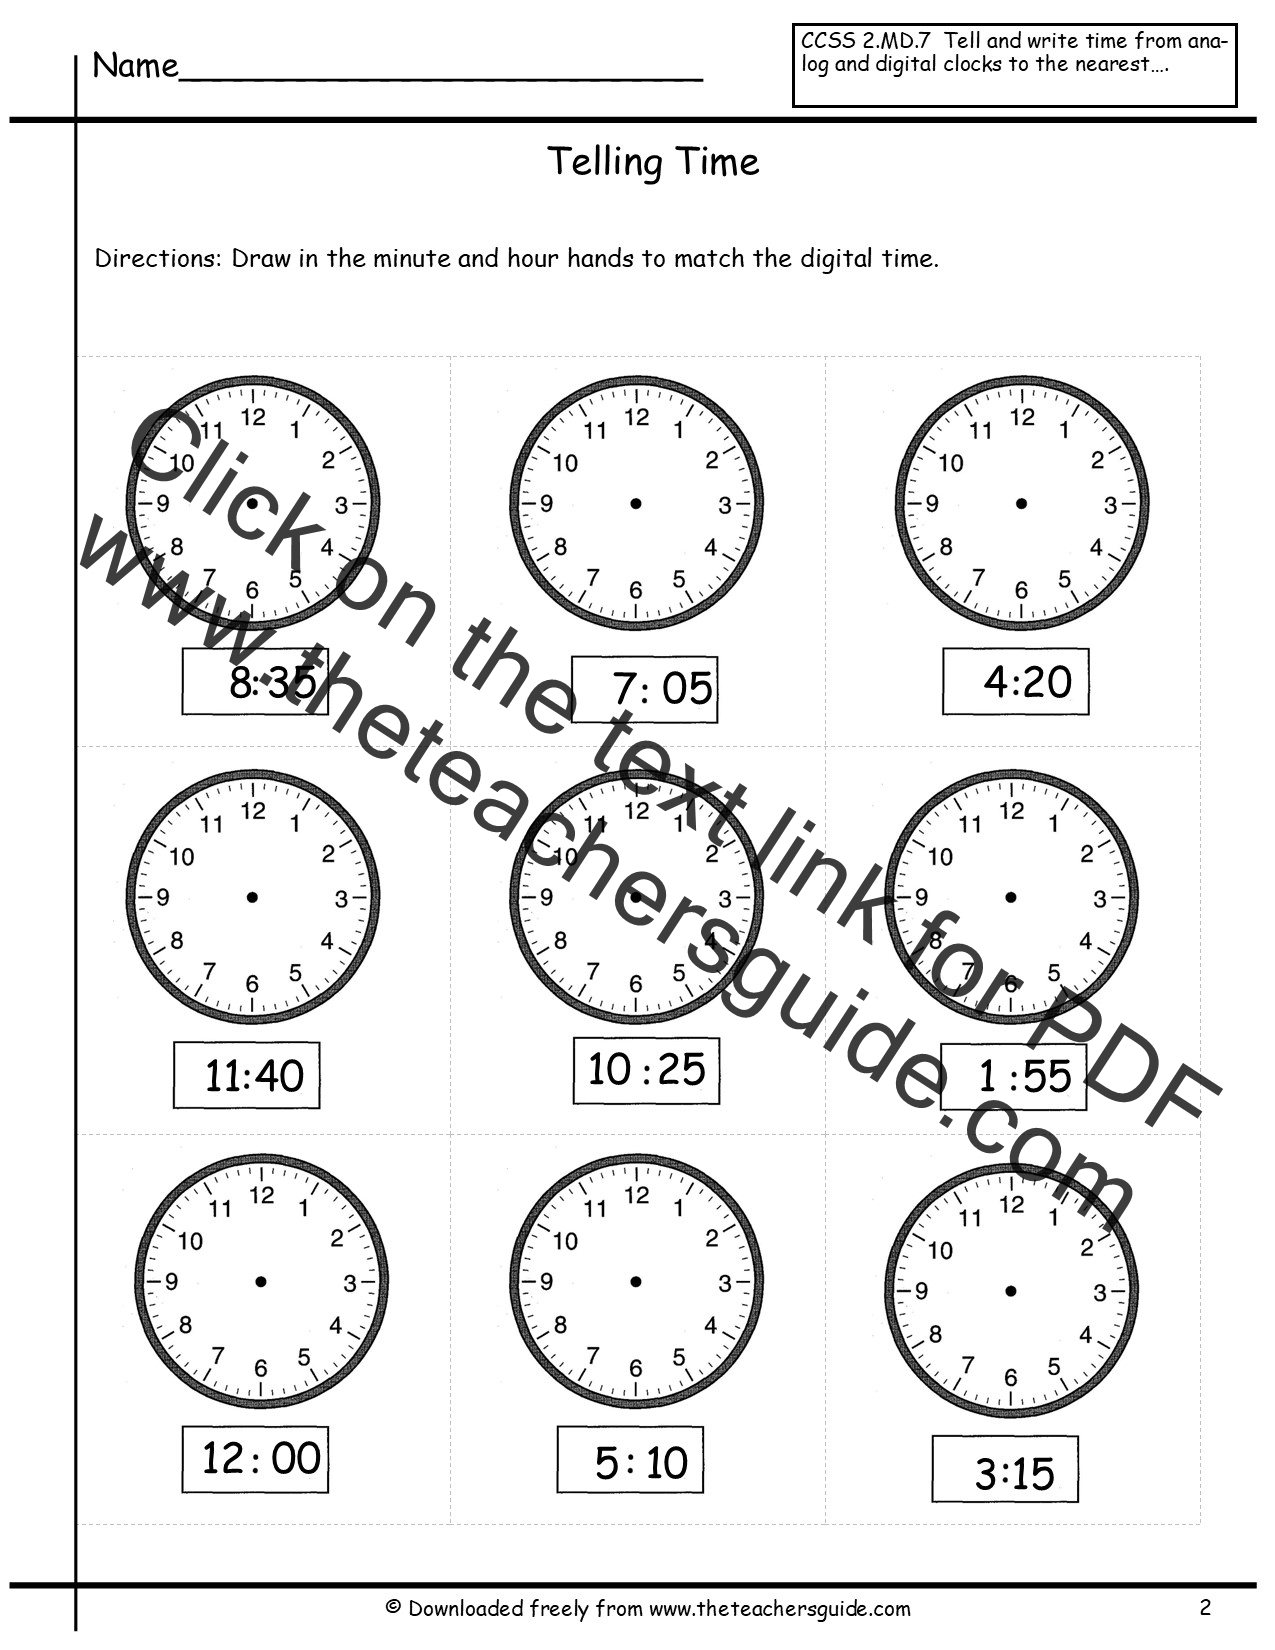 Proatmealus  Pretty Free Math Printouts From The Teachers Guide With Great Telling Time Worksheets With Comely Metric Conversion Worksheets Also Worksheet For Kids In Addition Number Pattern Worksheets And Th Grade Language Arts Worksheets As Well As Function Tables Worksheet Additionally Consonant Blends Worksheets From Theteachersguidecom With Proatmealus  Great Free Math Printouts From The Teachers Guide With Comely Telling Time Worksheets And Pretty Metric Conversion Worksheets Also Worksheet For Kids In Addition Number Pattern Worksheets From Theteachersguidecom